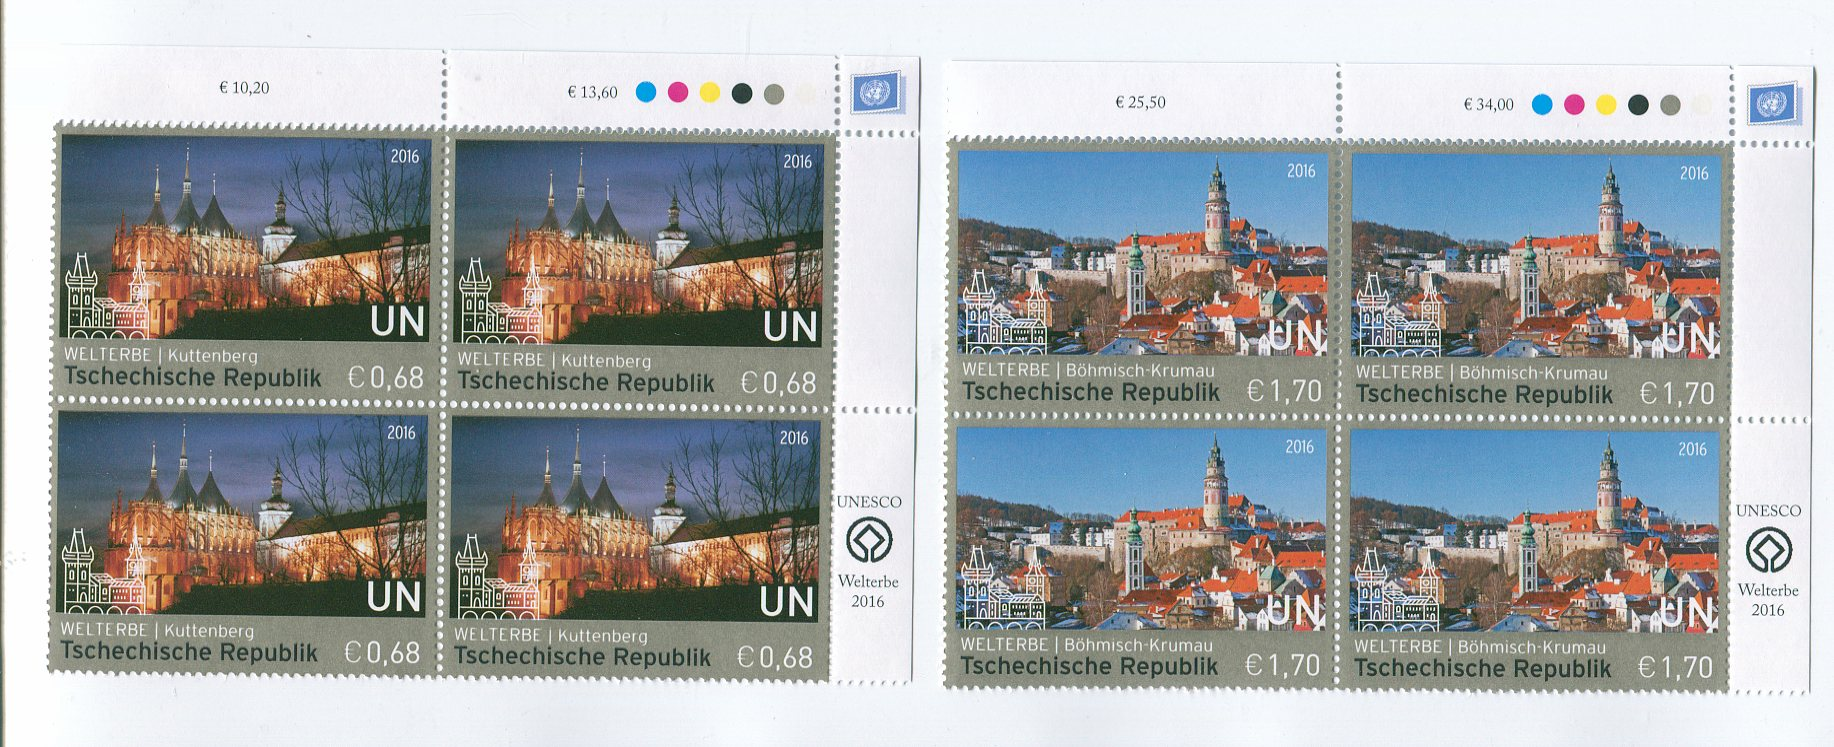 UNV 592-93 €68,1.70 UNESCO Czech Rep Inscr. Blocks #unv592-3ib